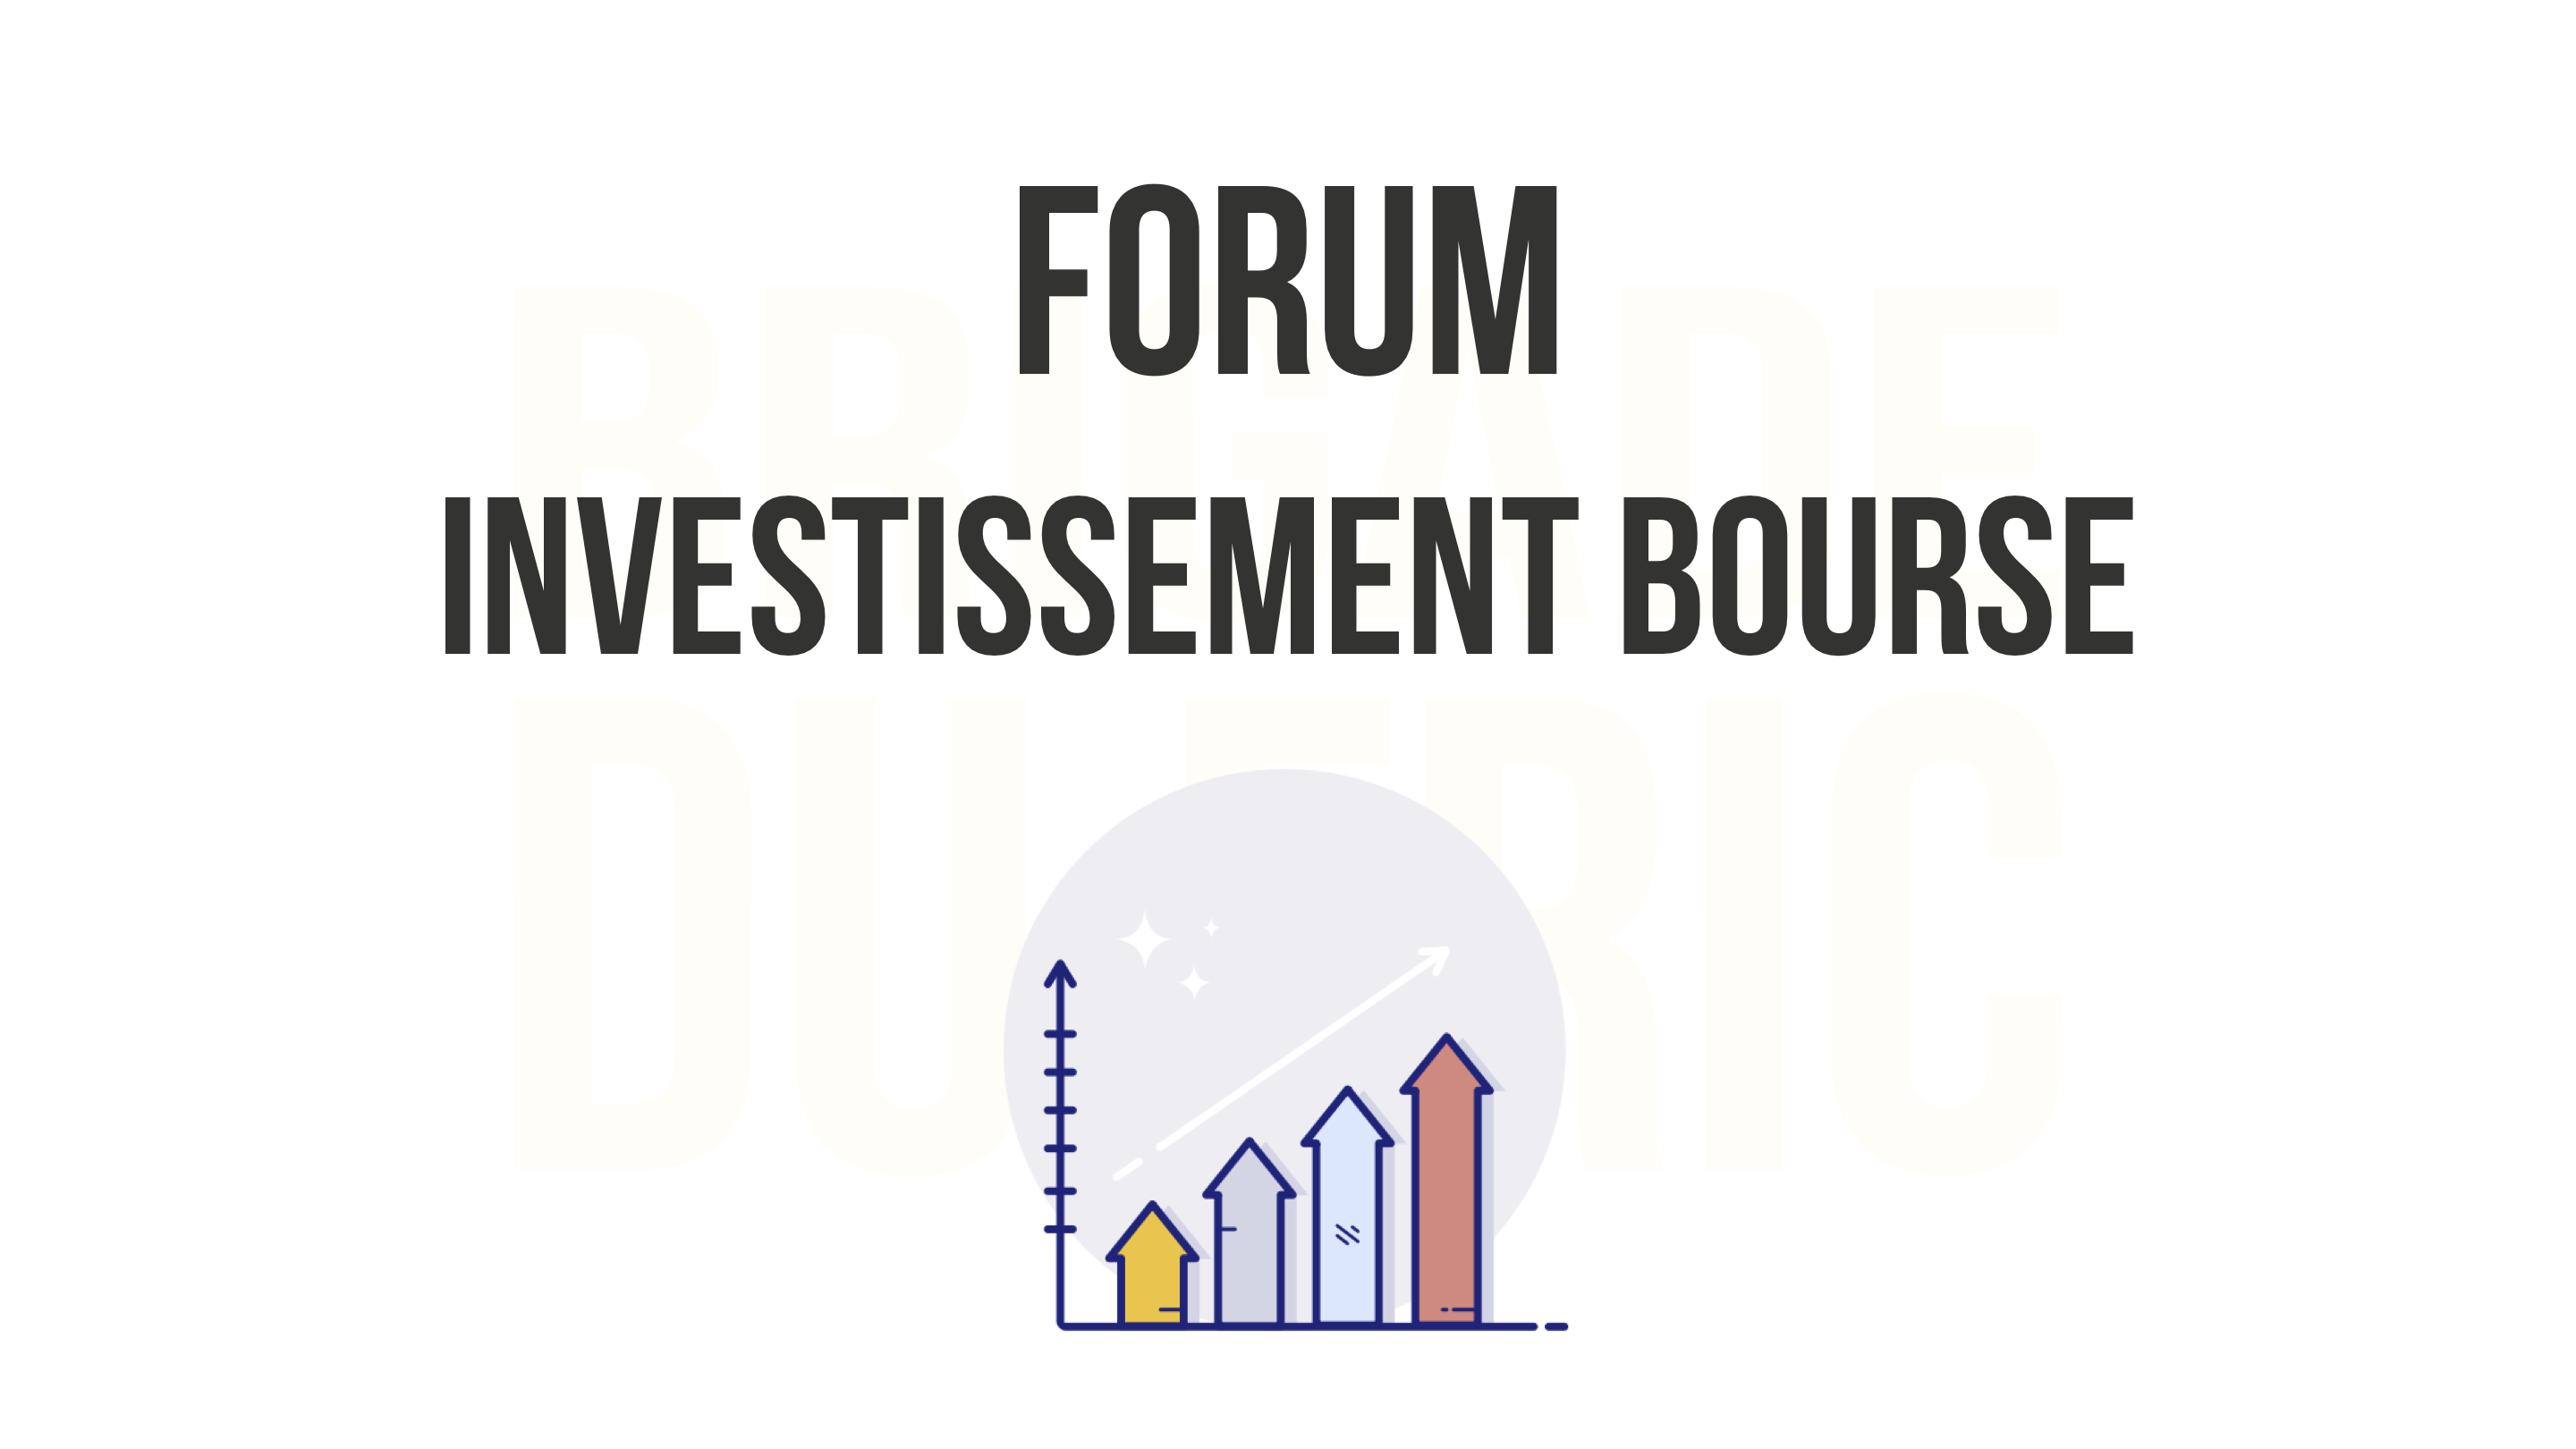 Forum investissement bourse